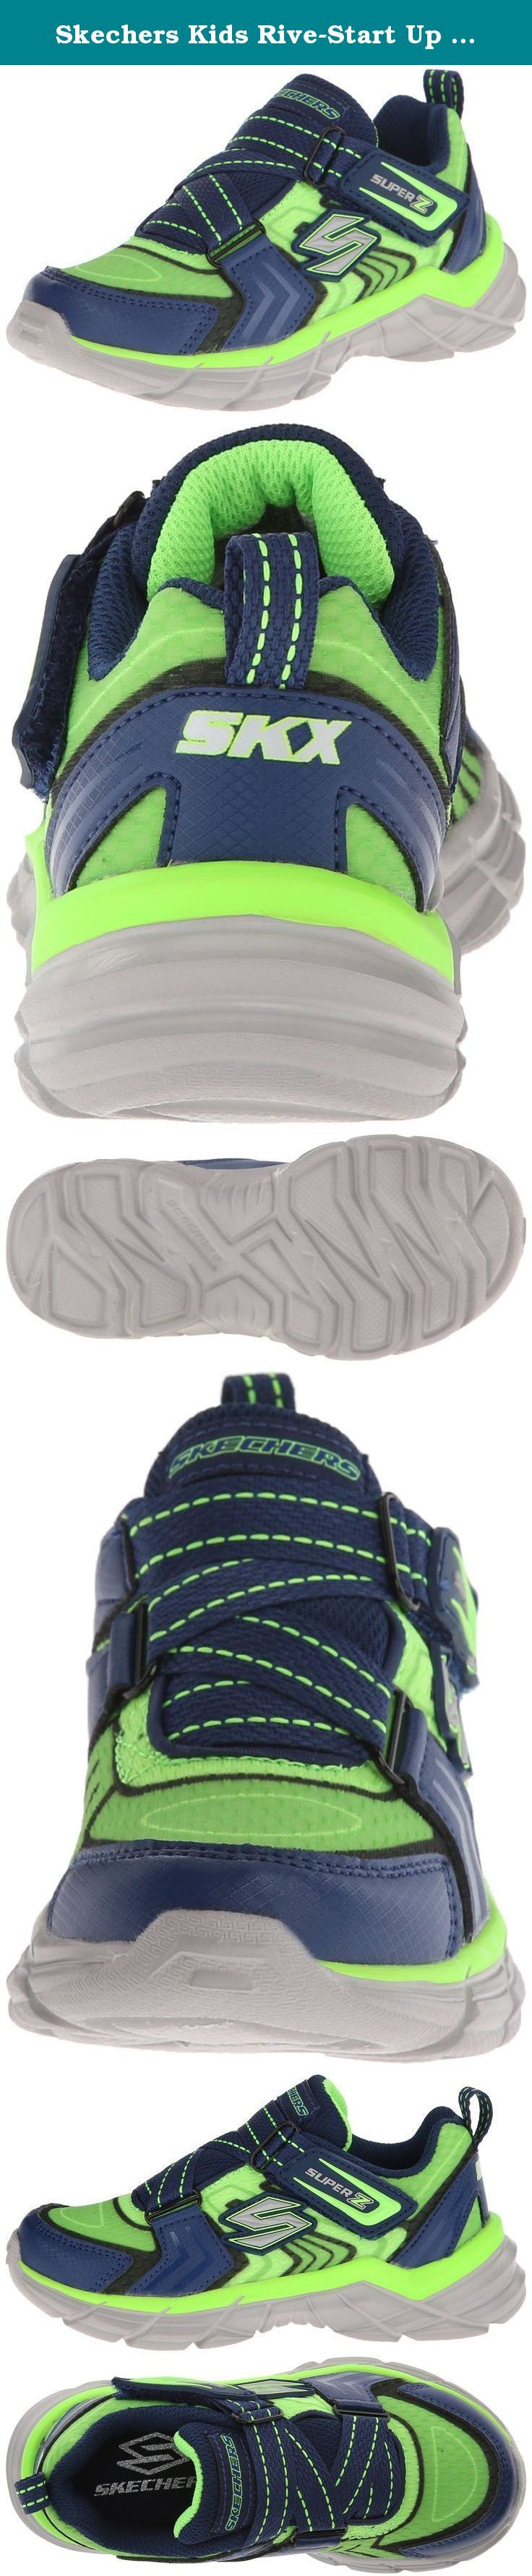 Skechers Kids Rive-Start Up Athletic Sneaker (Little Kid/Big Kid). Synthetic leather and mesh fabric upper in a slip on athletic sporty training sneaker with stitching and overlay accents.